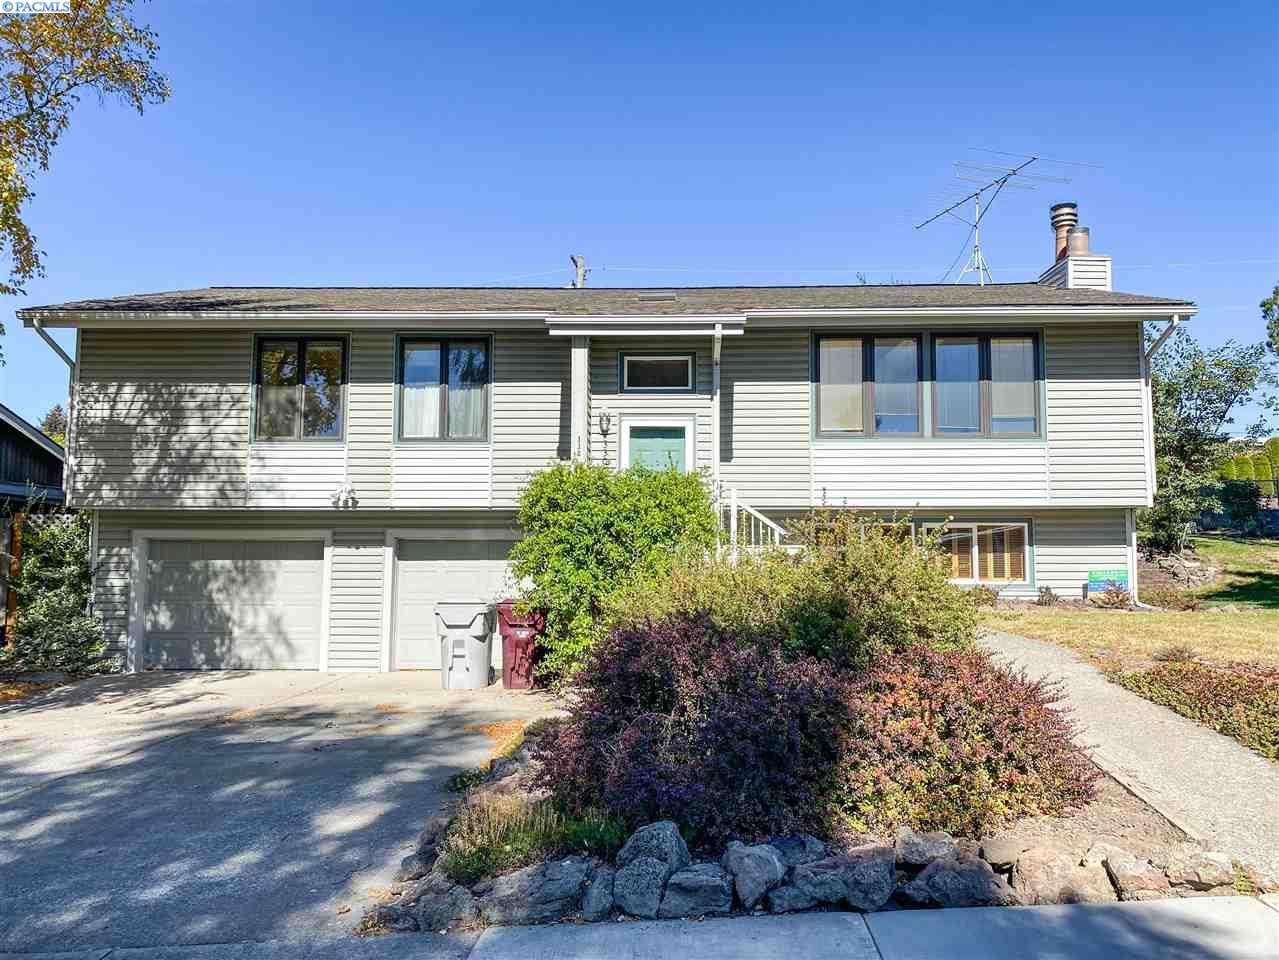 Photo of 330 SE Bellevue St., Pullman, WA 99163 (MLS # 249031)